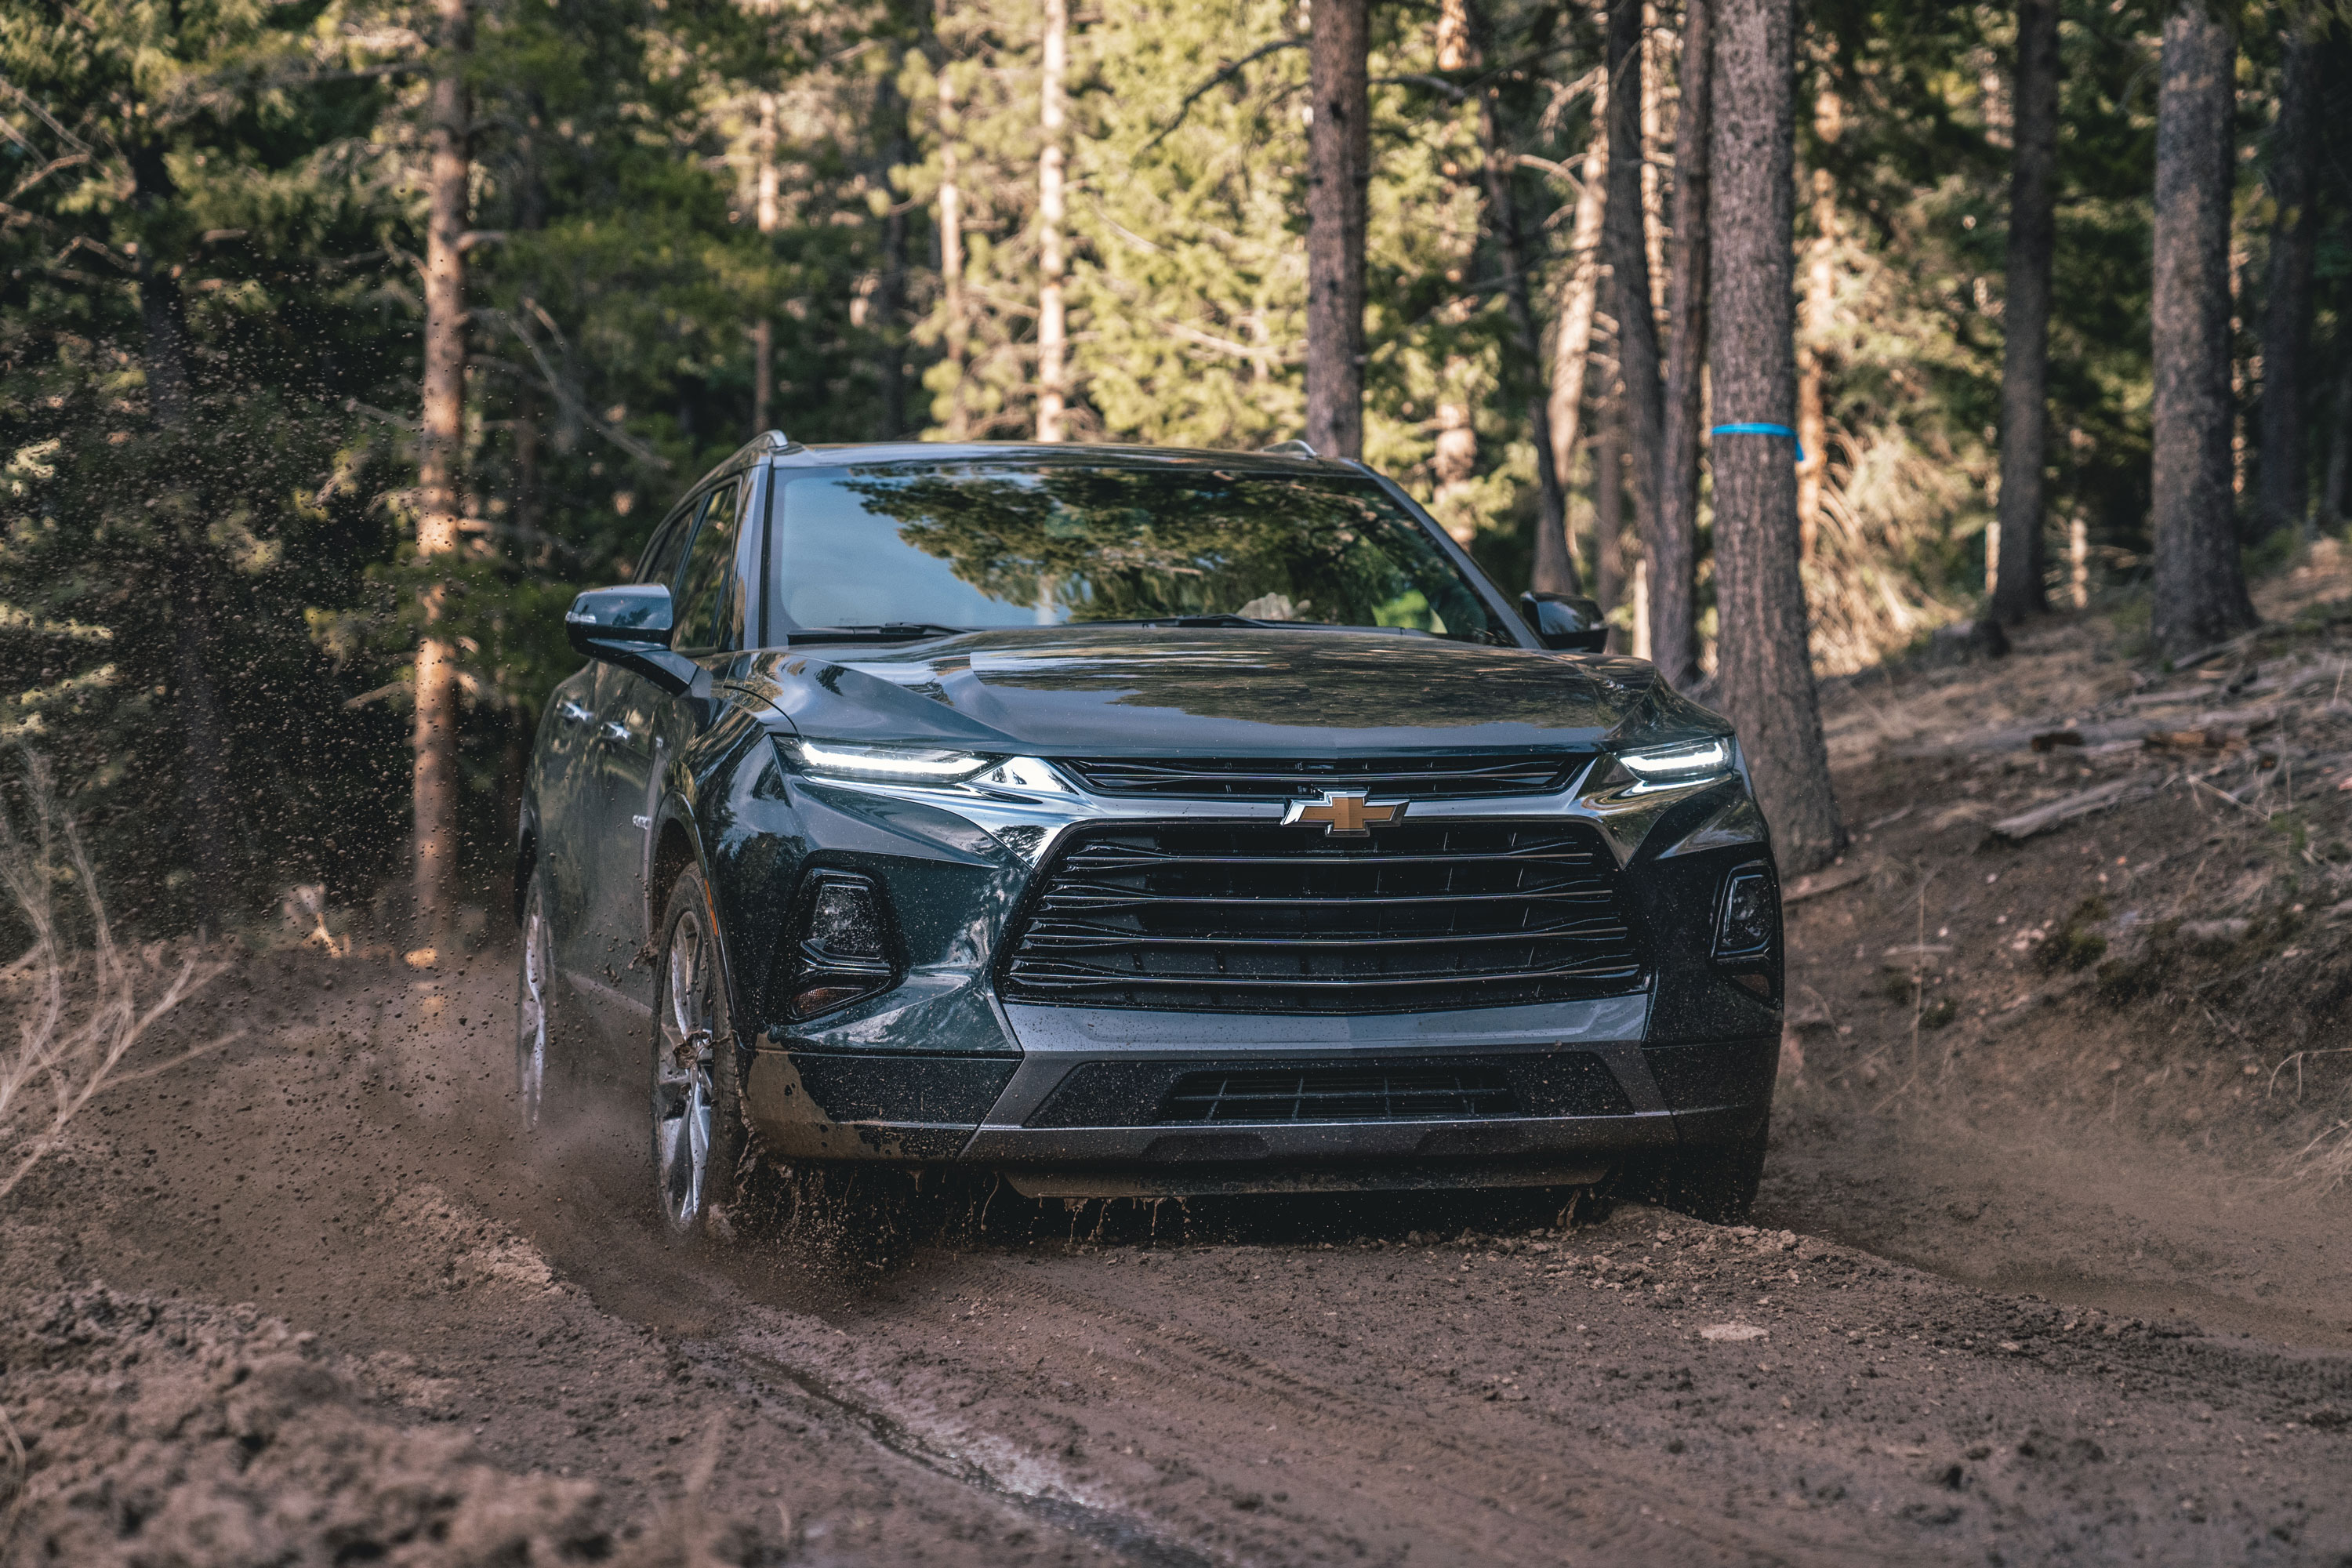 2019 Chevy Blazer parked at campsite